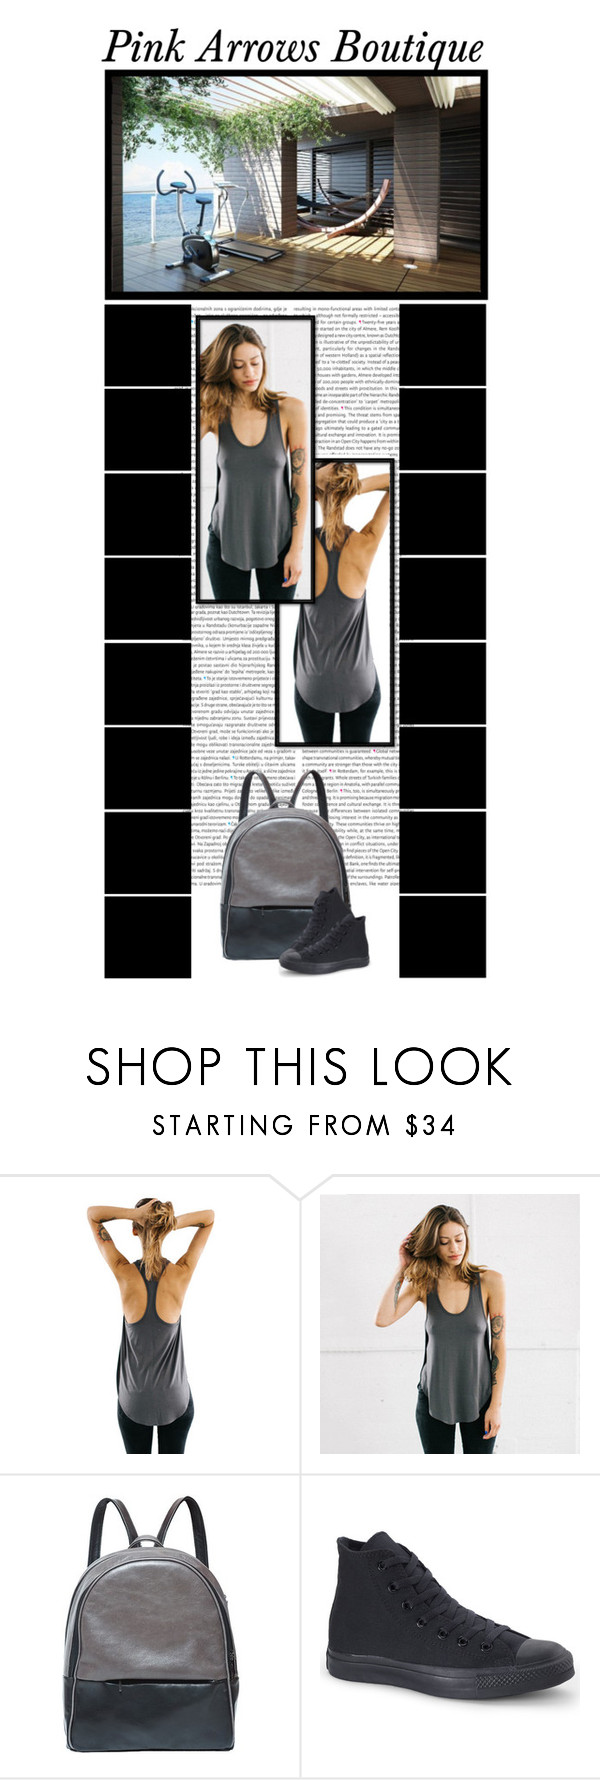 """""""Pink Arrows Boutique (13)"""" by irresistible-livingdeadgirl ❤ liked on Polyvore featuring Oris, Converse, converse, backpack, exercise, gym and pinkarrowsbtq"""